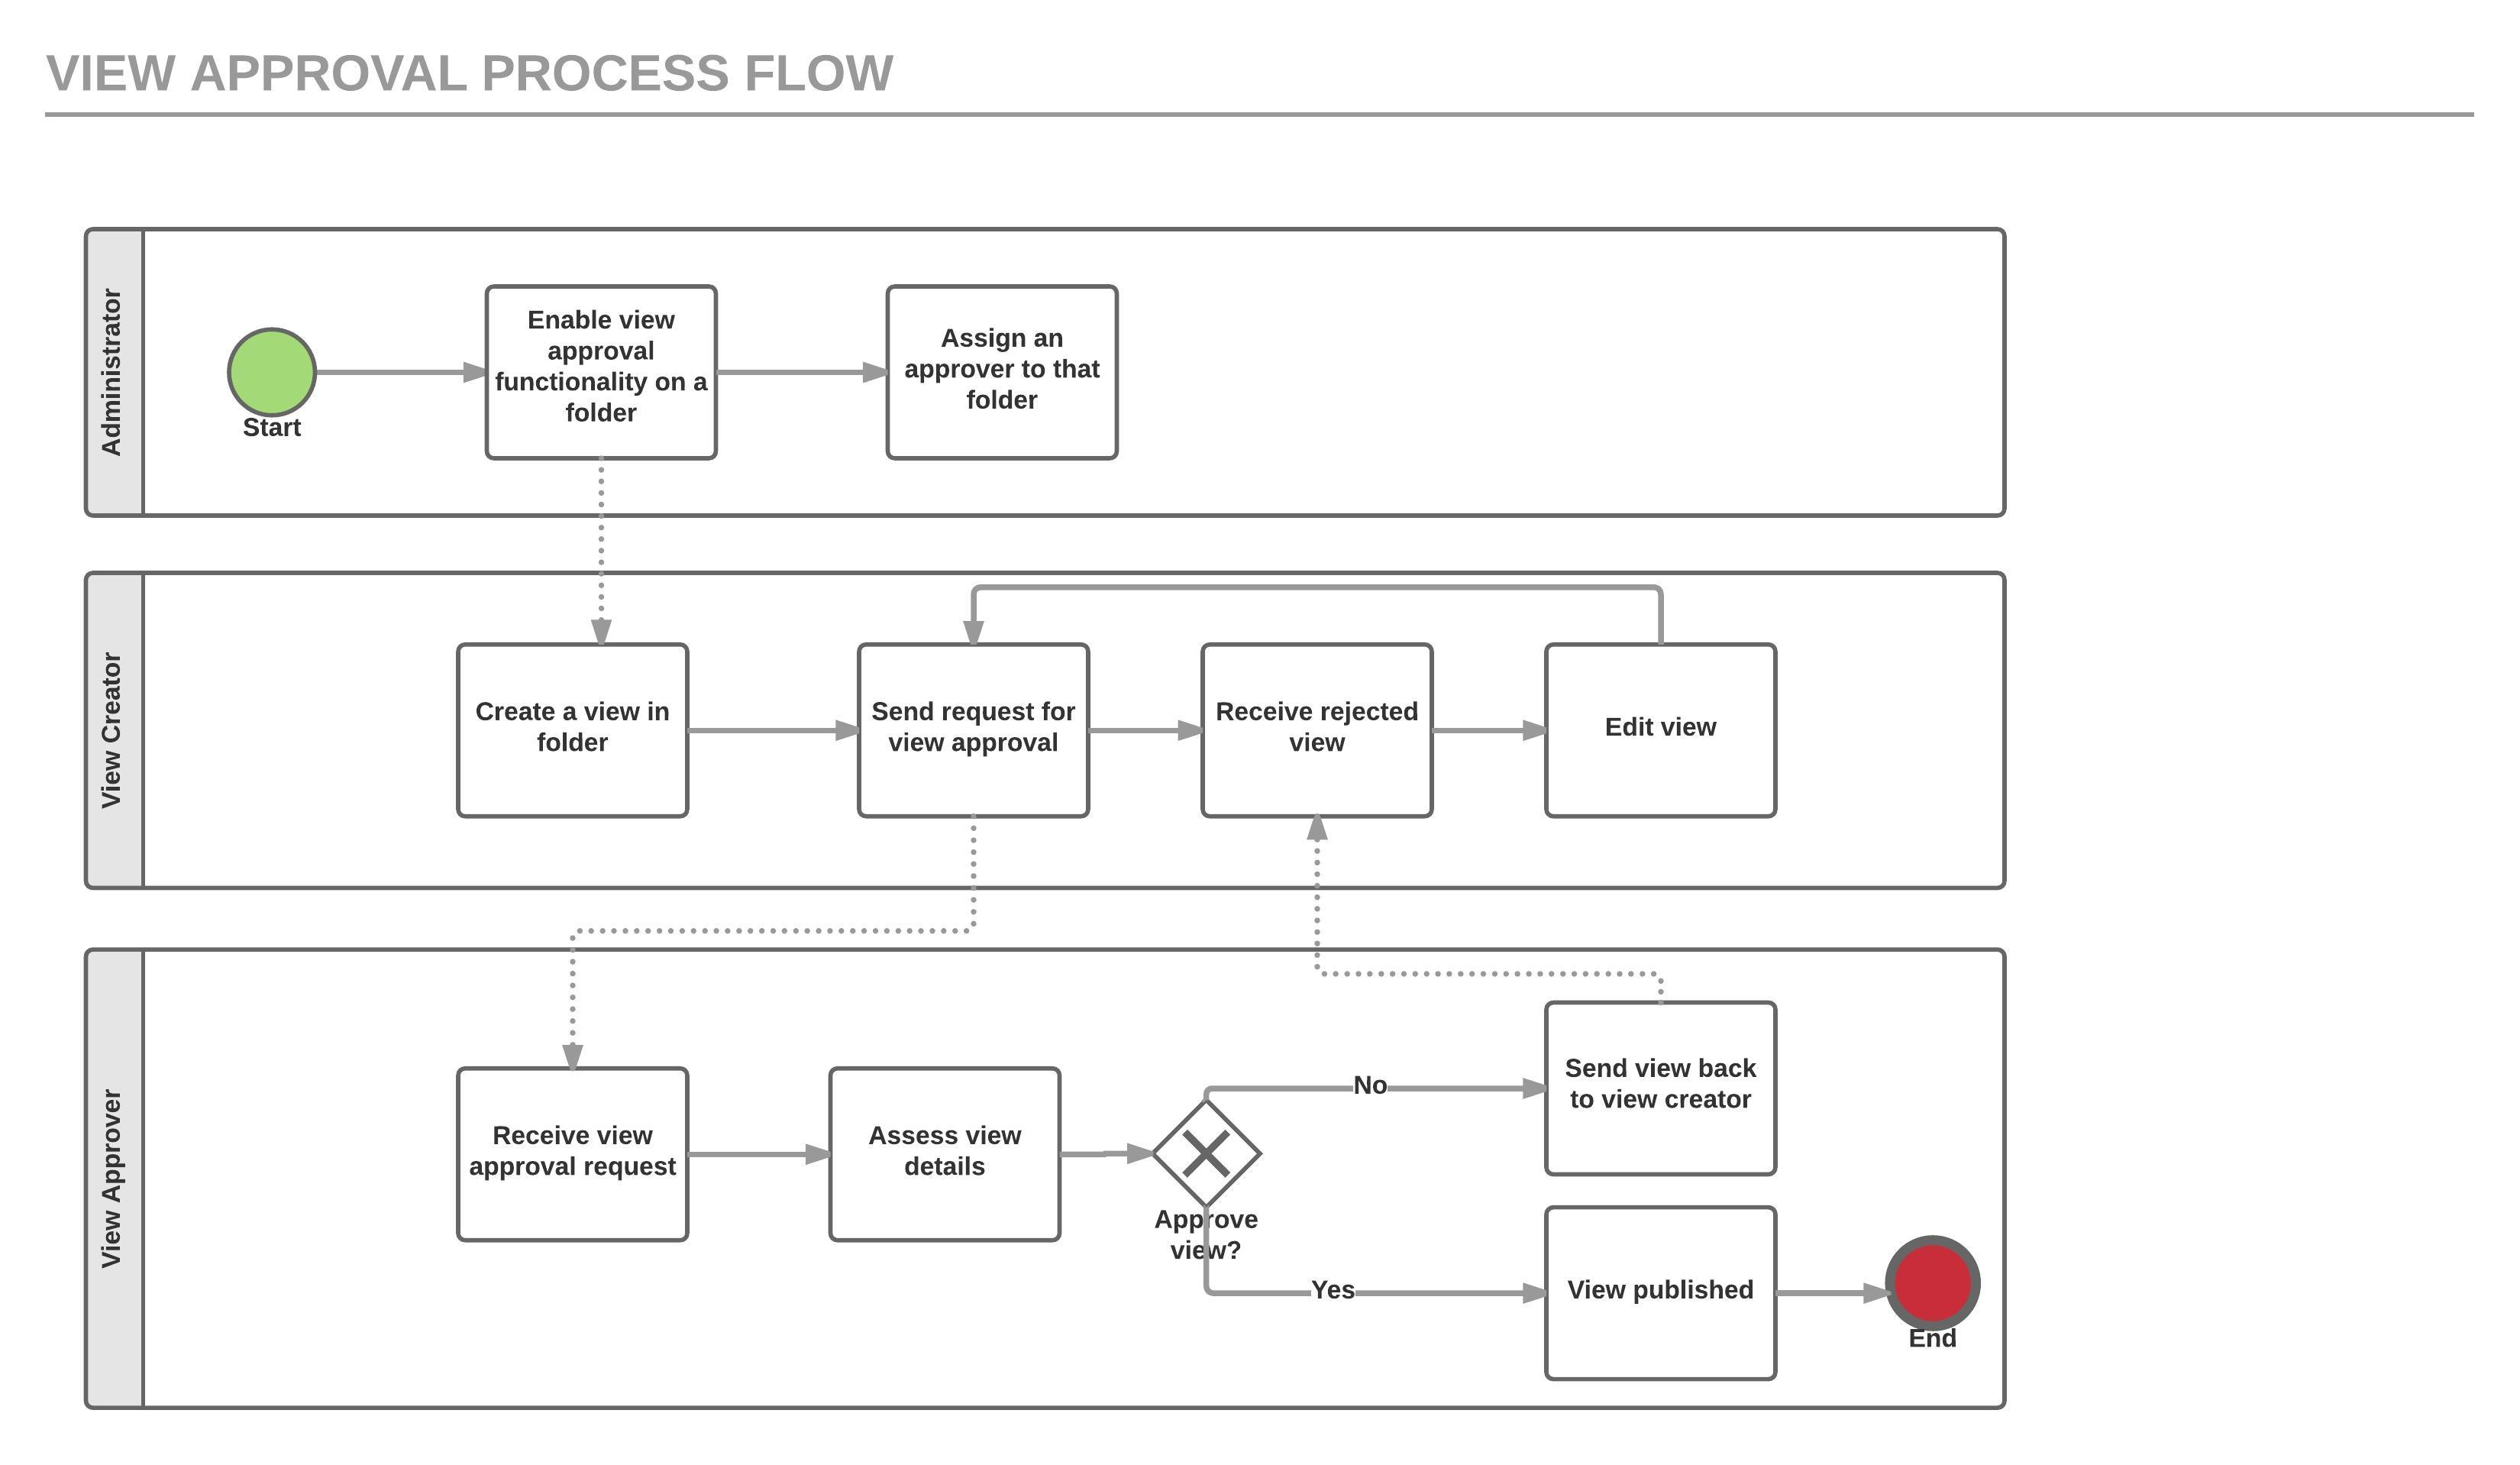 View approval workflow yellowfin guide 73 yellowfin wiki the bpmn diagram below depicts the view approval process flow more clearly ccuart Image collections